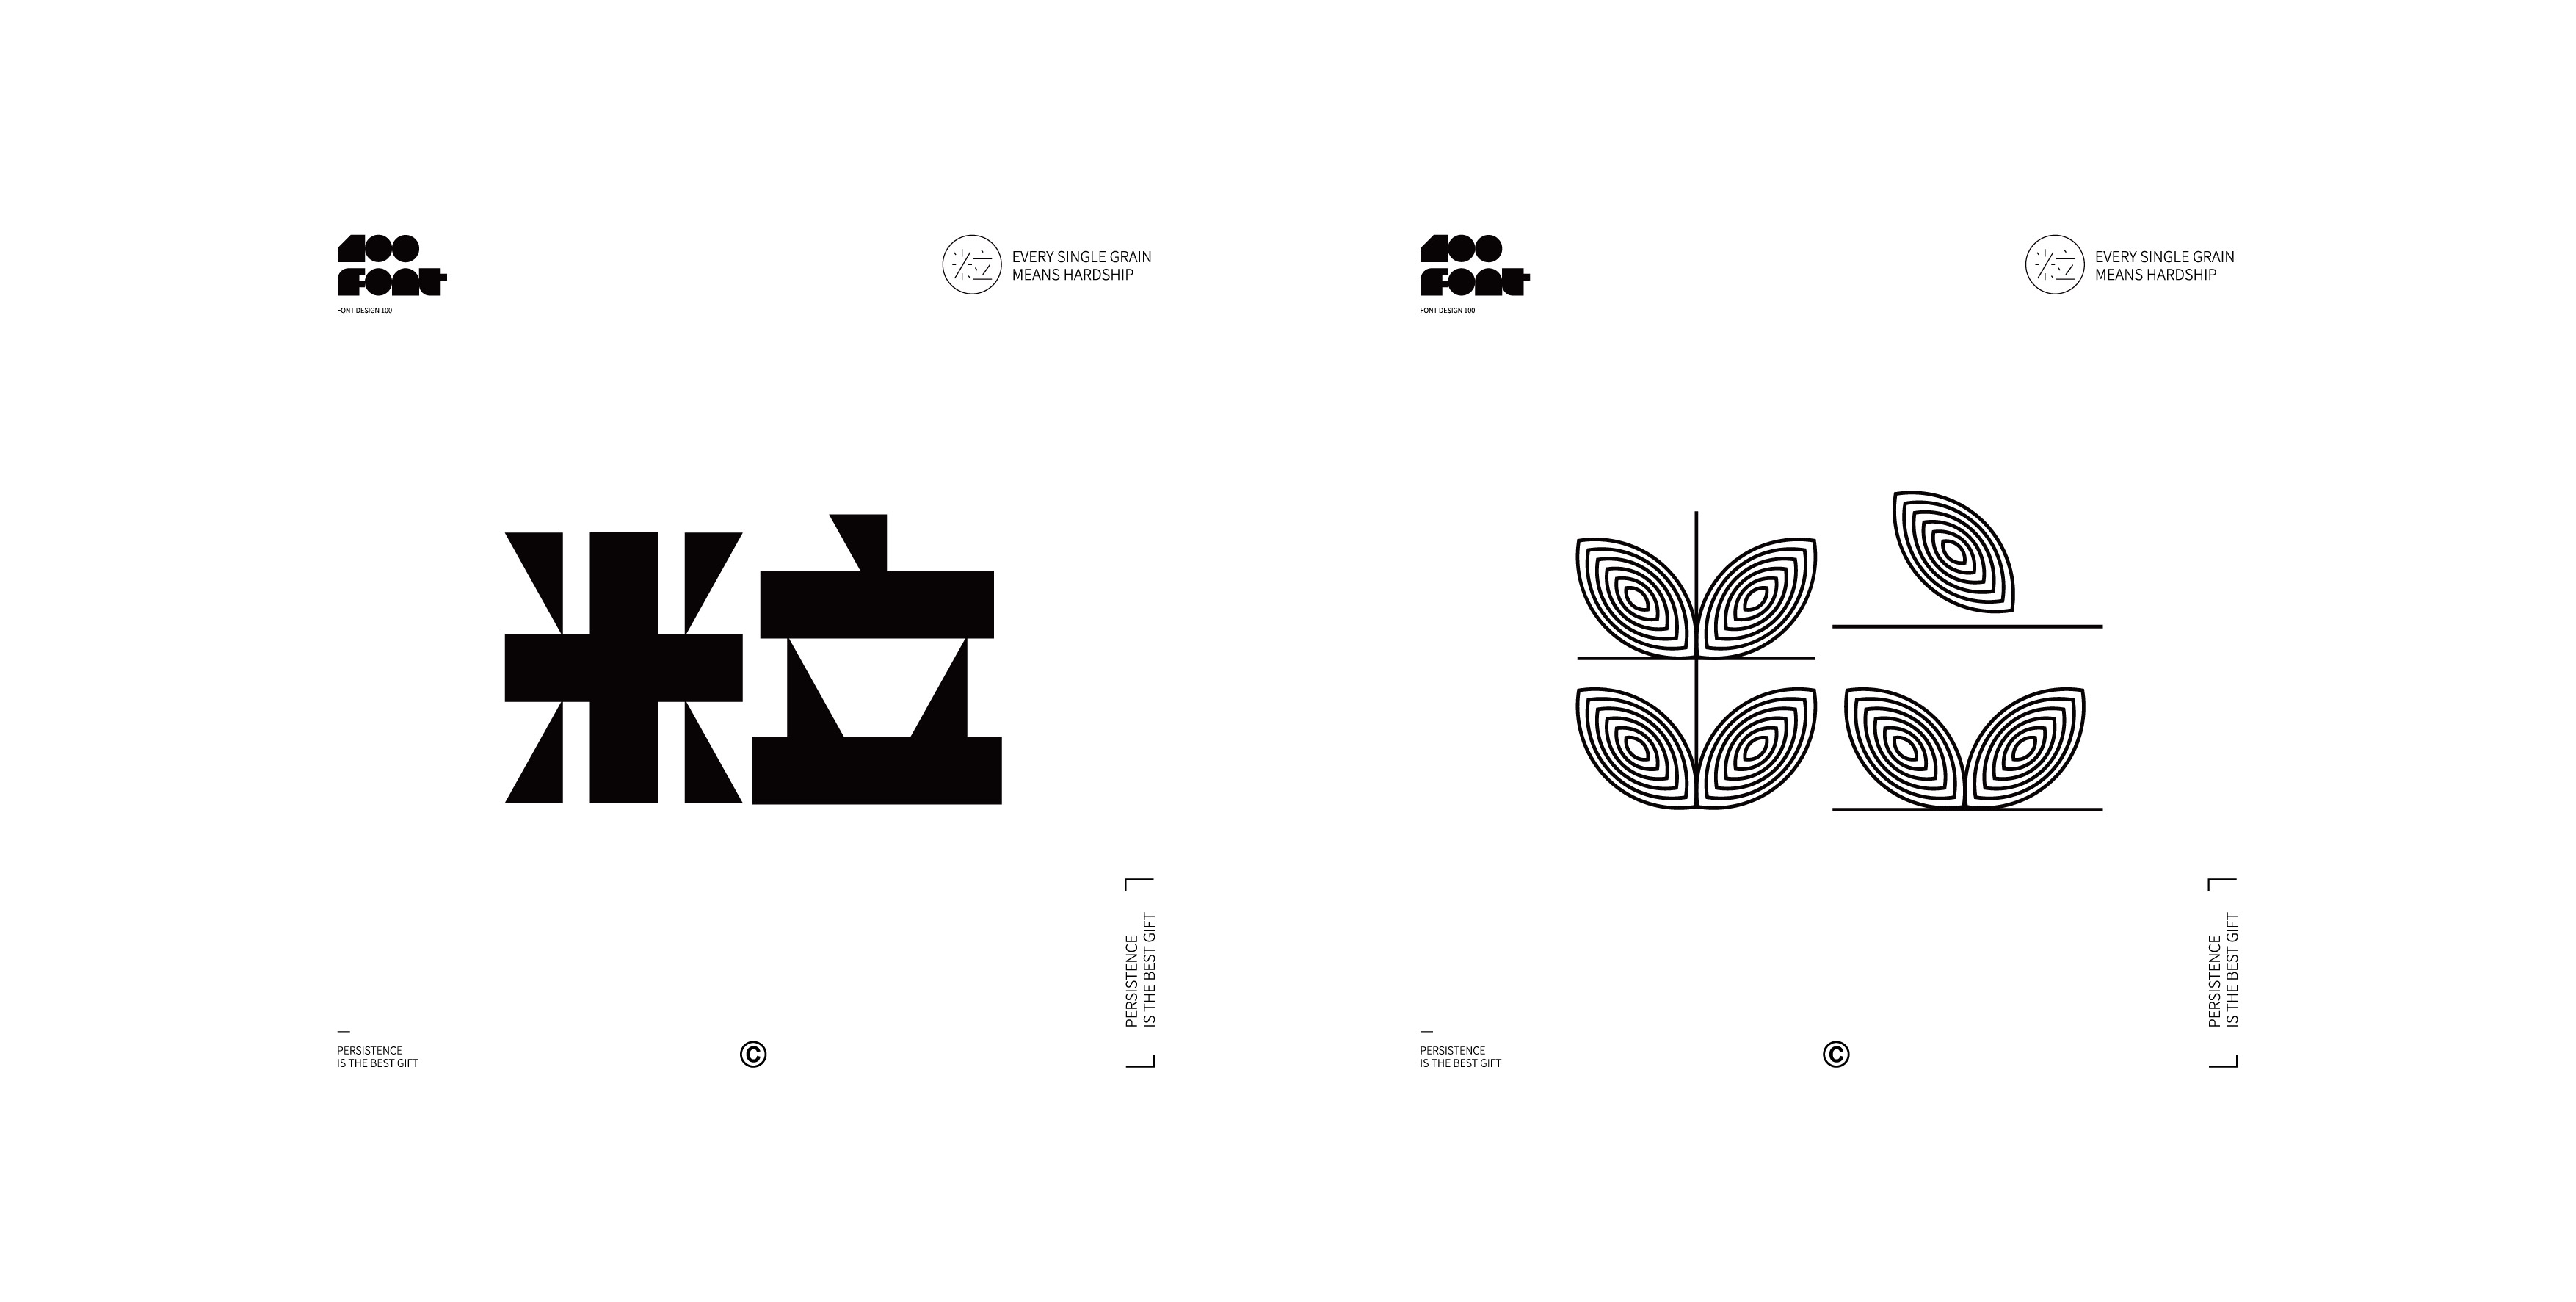 51P Collection of the latest Chinese font design schemes in 2021 #.87